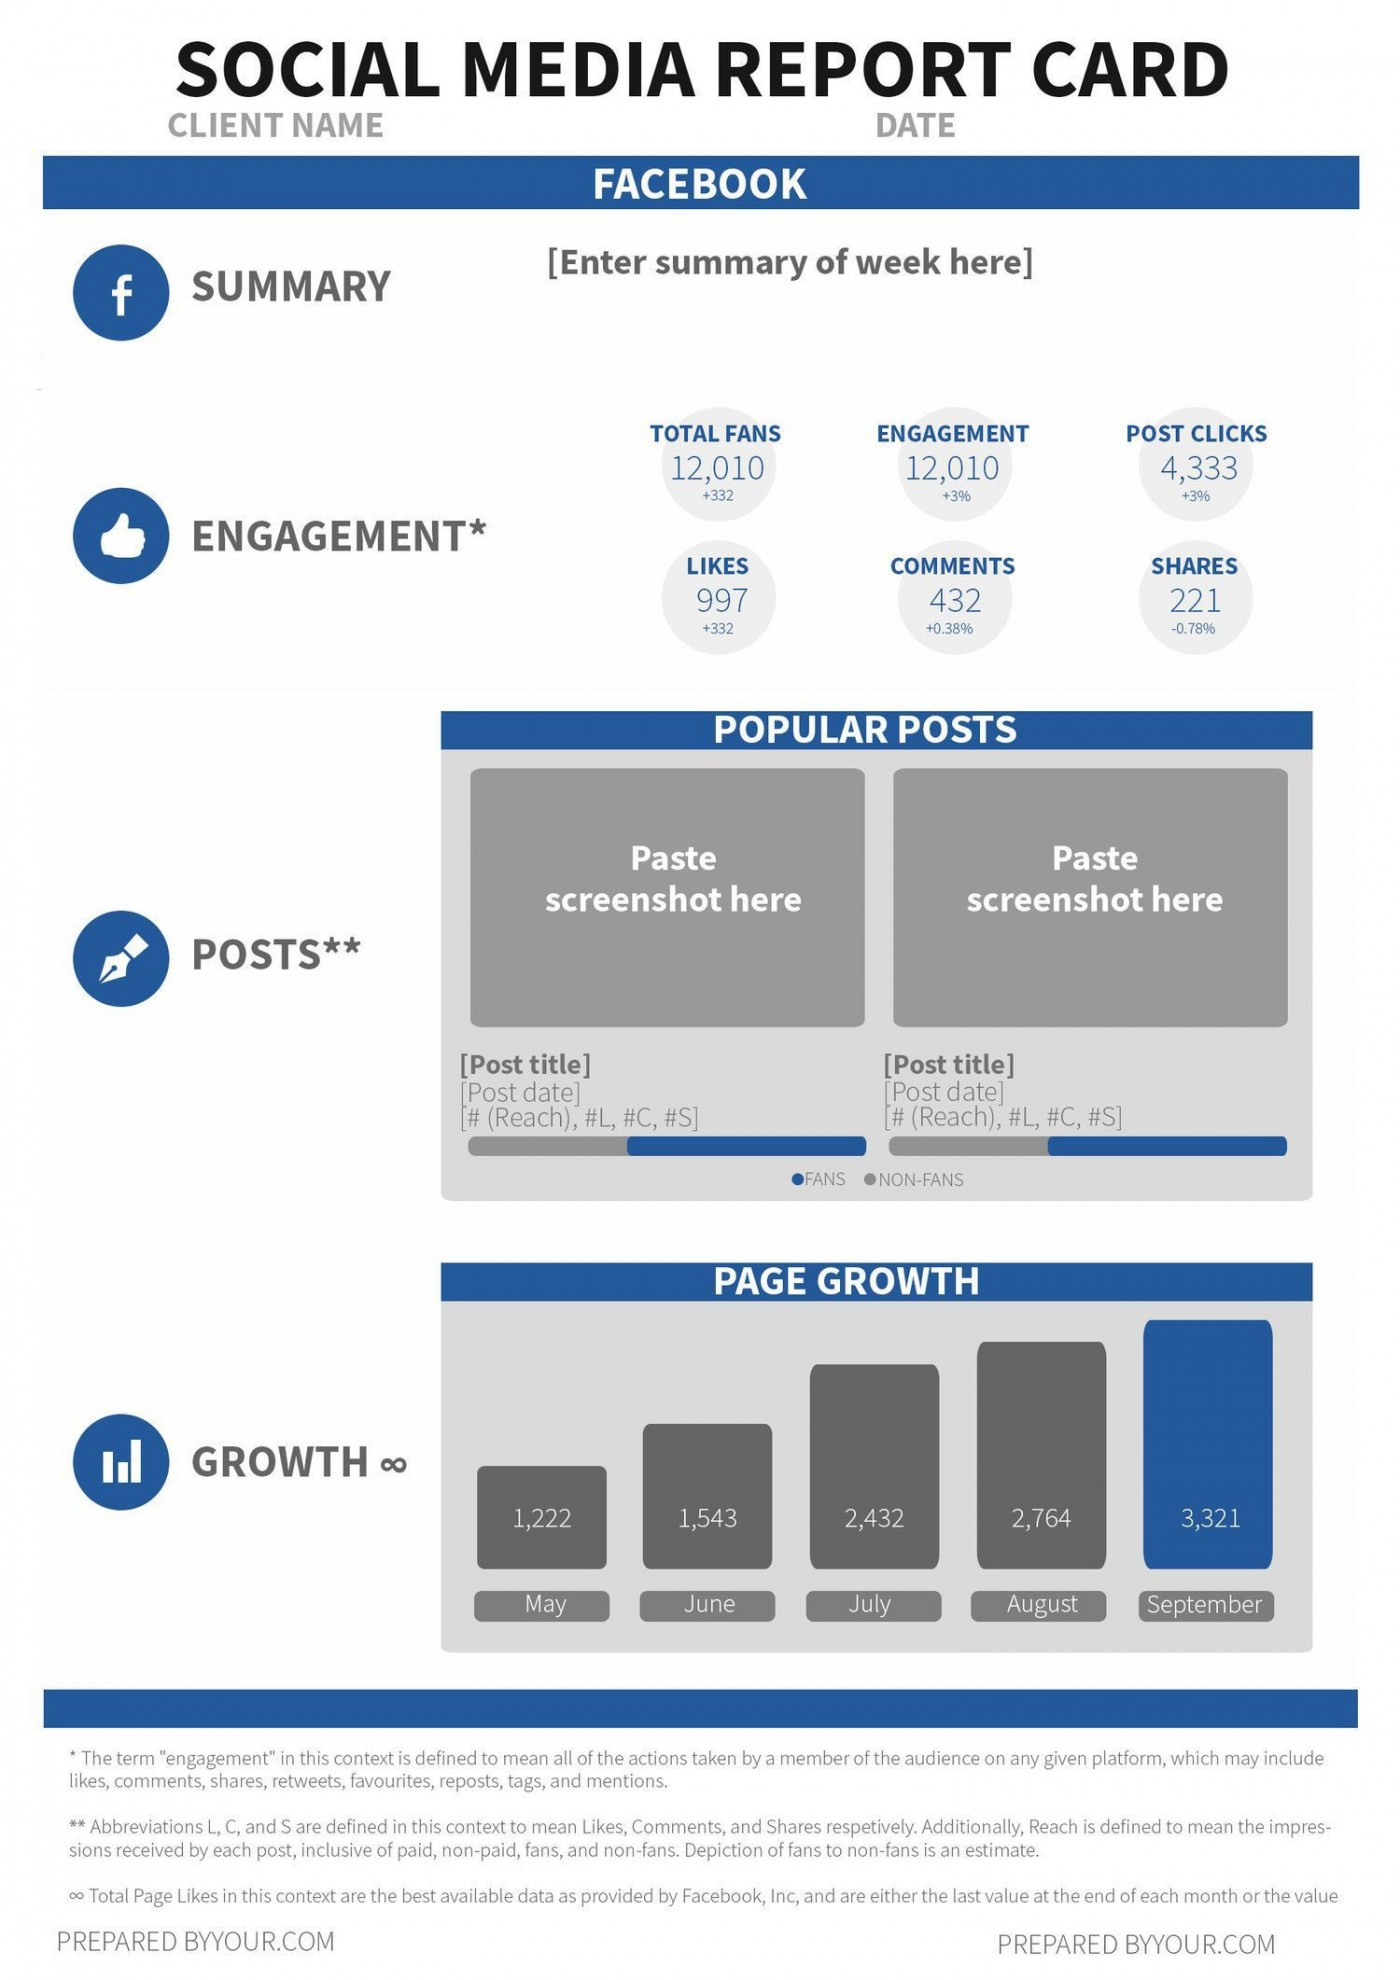 001 Fearsome Social Media Report Template Photo  Powerpoint Free Download1400